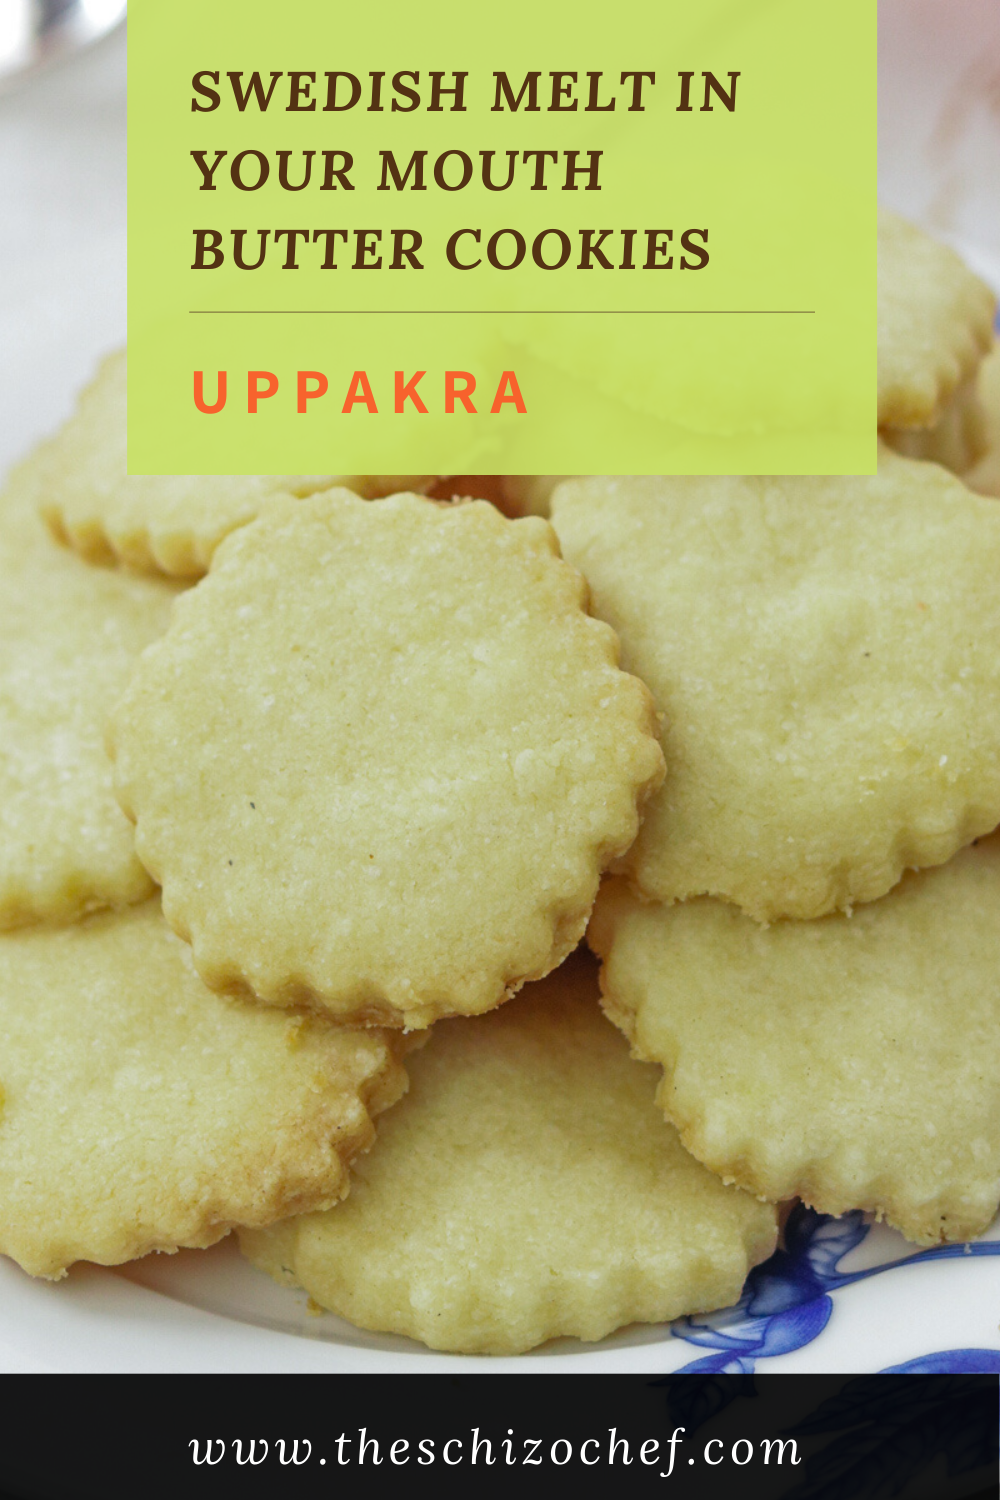 Uppakra - Swedish Butter Cookies with text